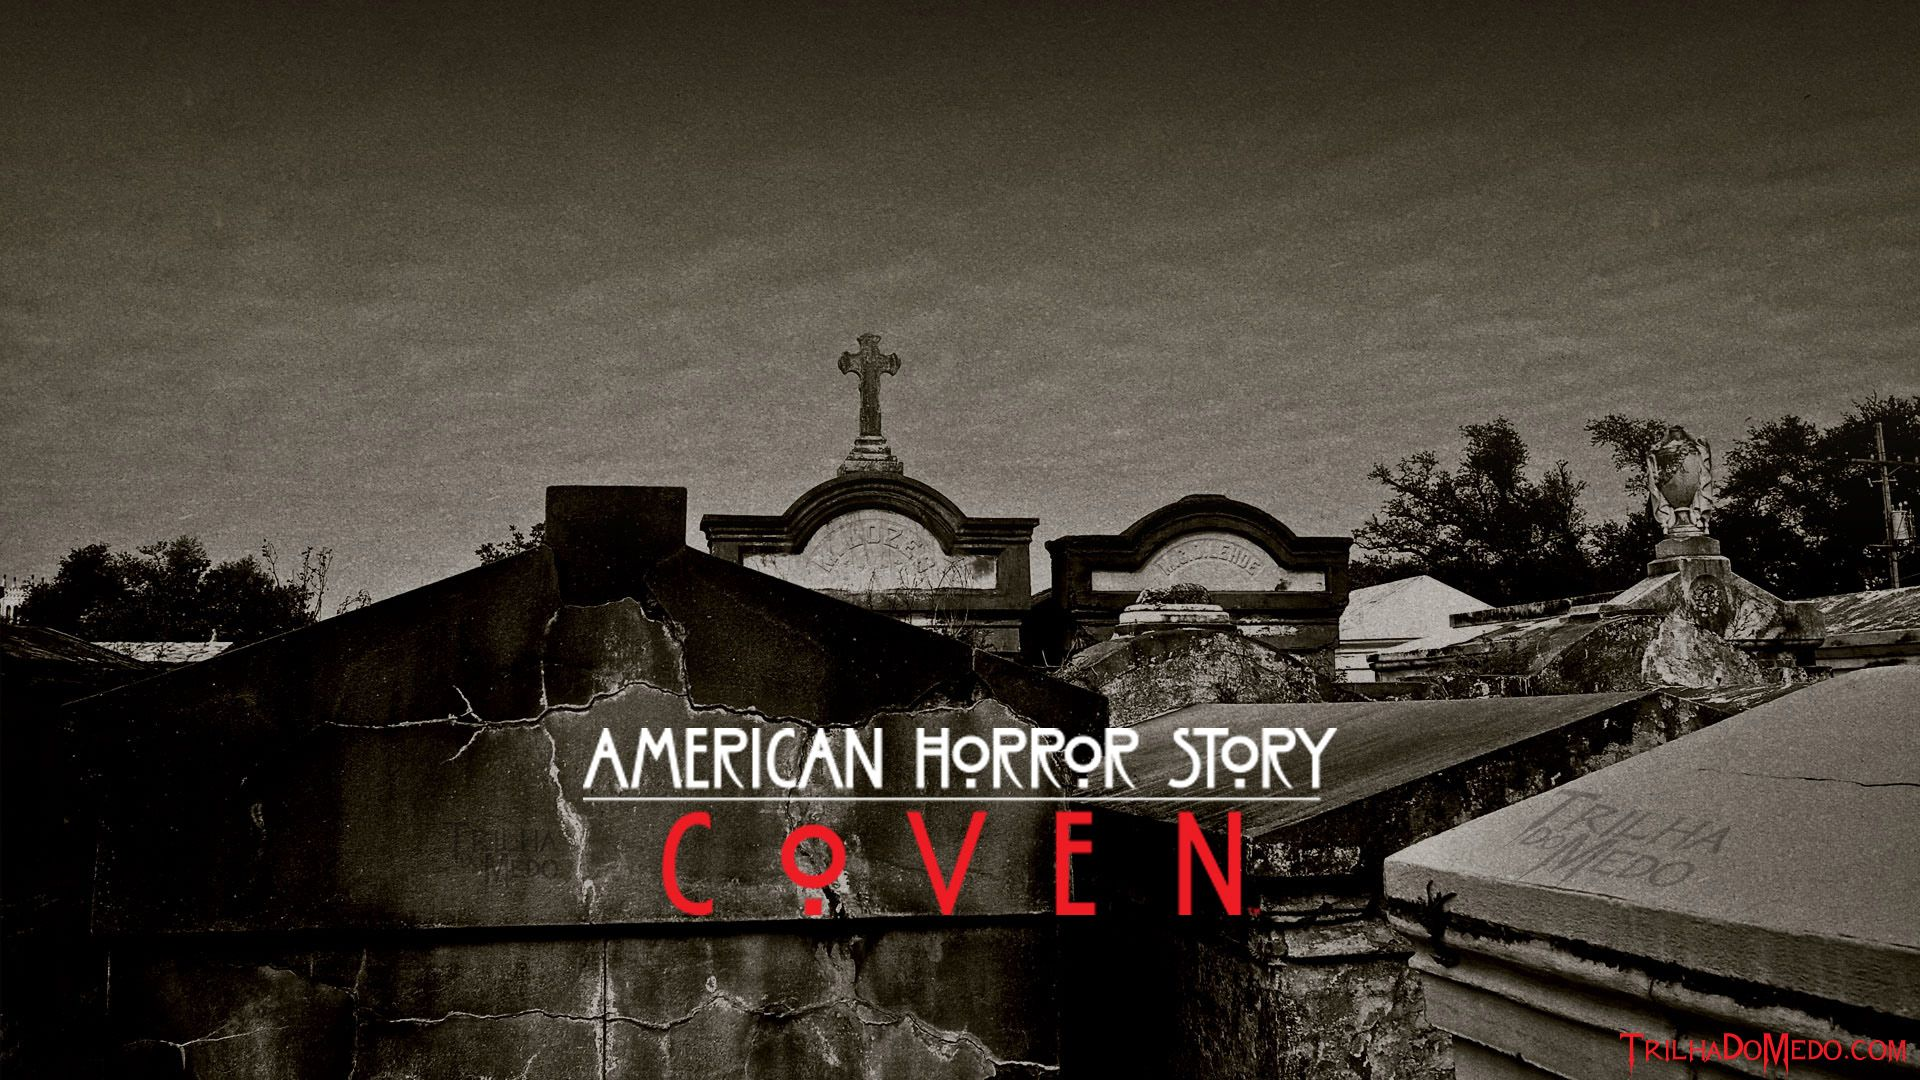 Free download 15942 american horror story coven wallpapers [1920x1080] for your Desktop, Mobile & Tablet